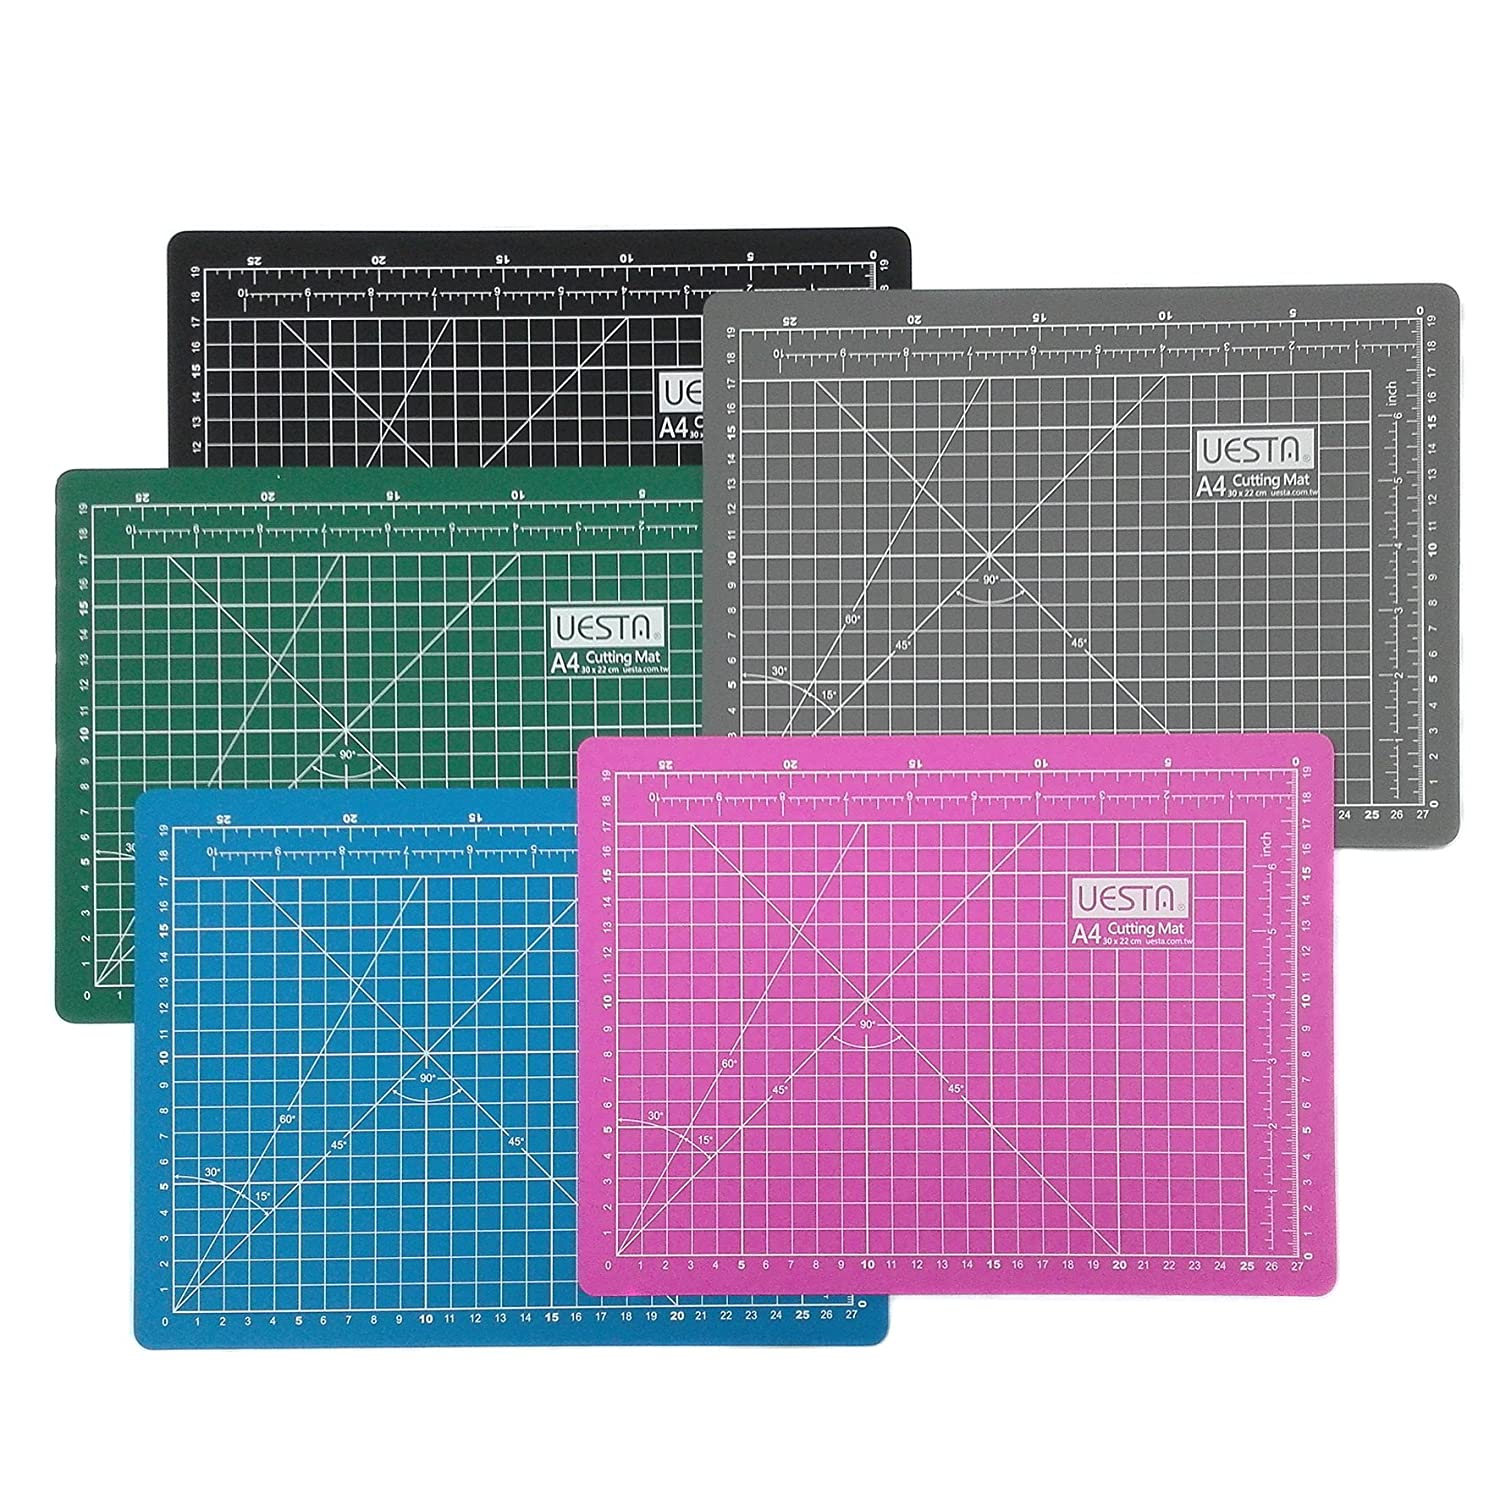 UESTA A3 (18L x 12W Inch) (450 x 300 mm) Self Healing 5 Layers PVC Colorful Cutting Mat (Green) Yuen Young Plastics Co. Ltd